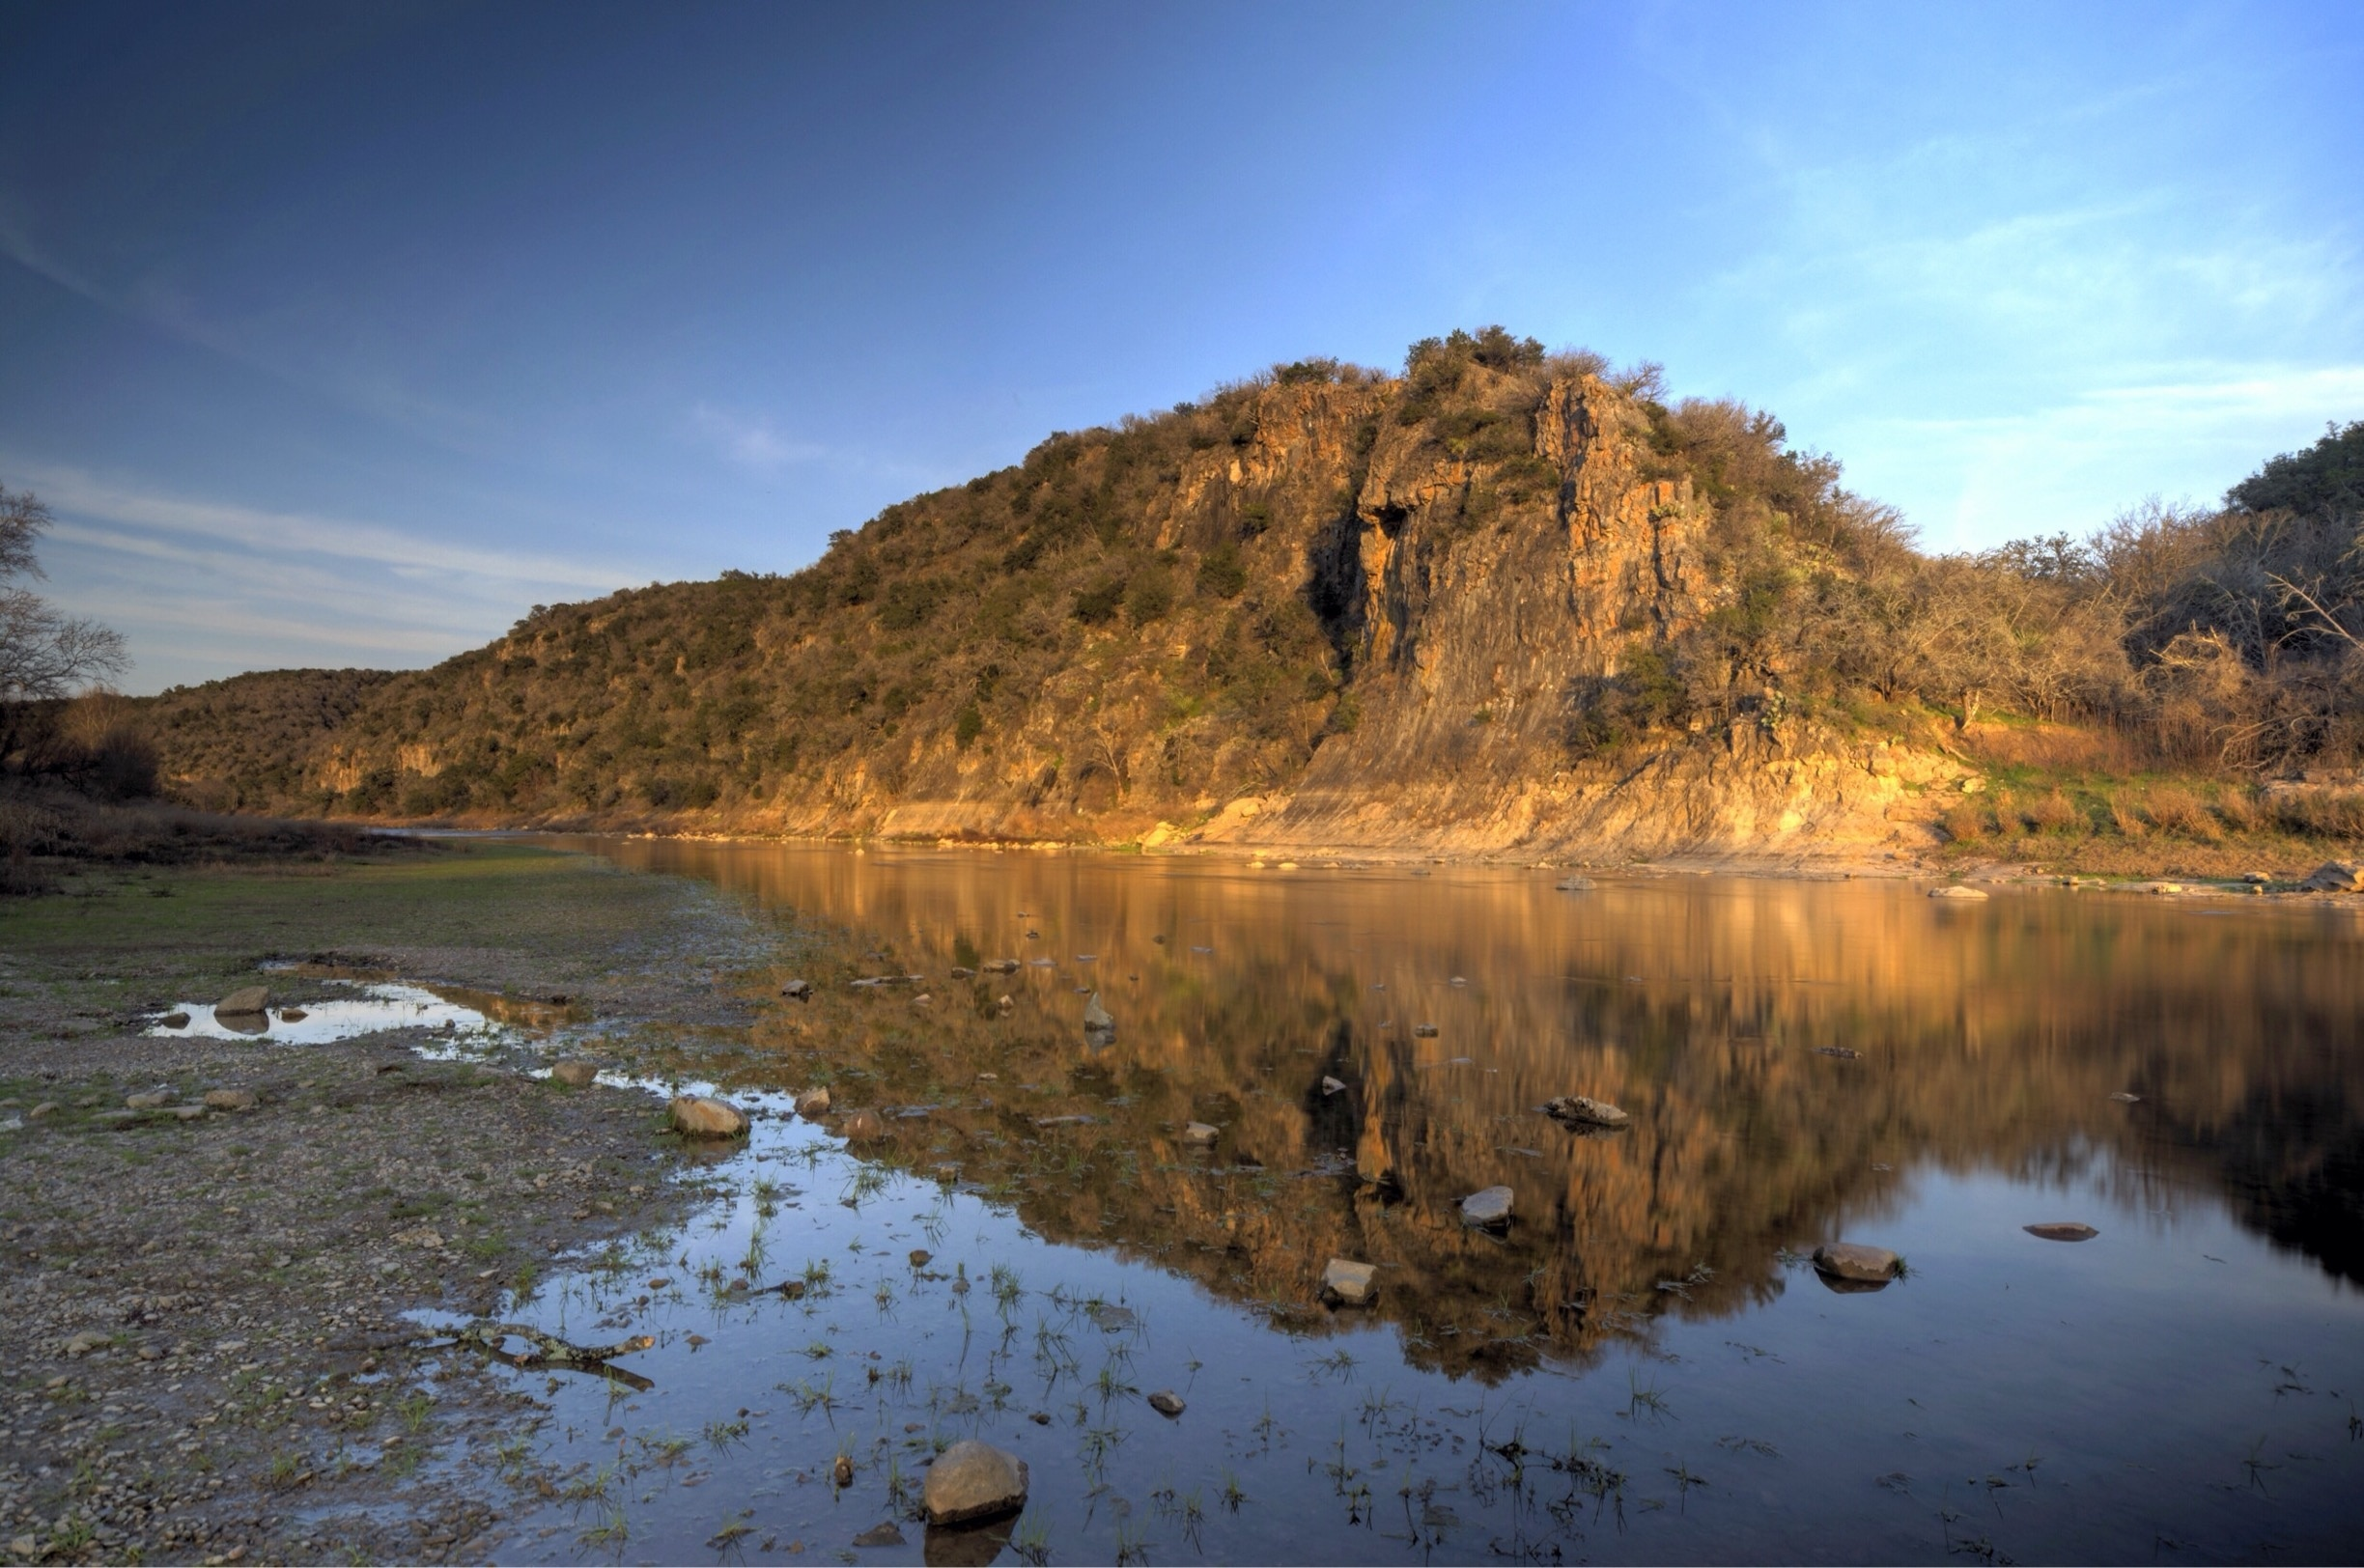 Colorado Bend State Park, Texas, United States of America